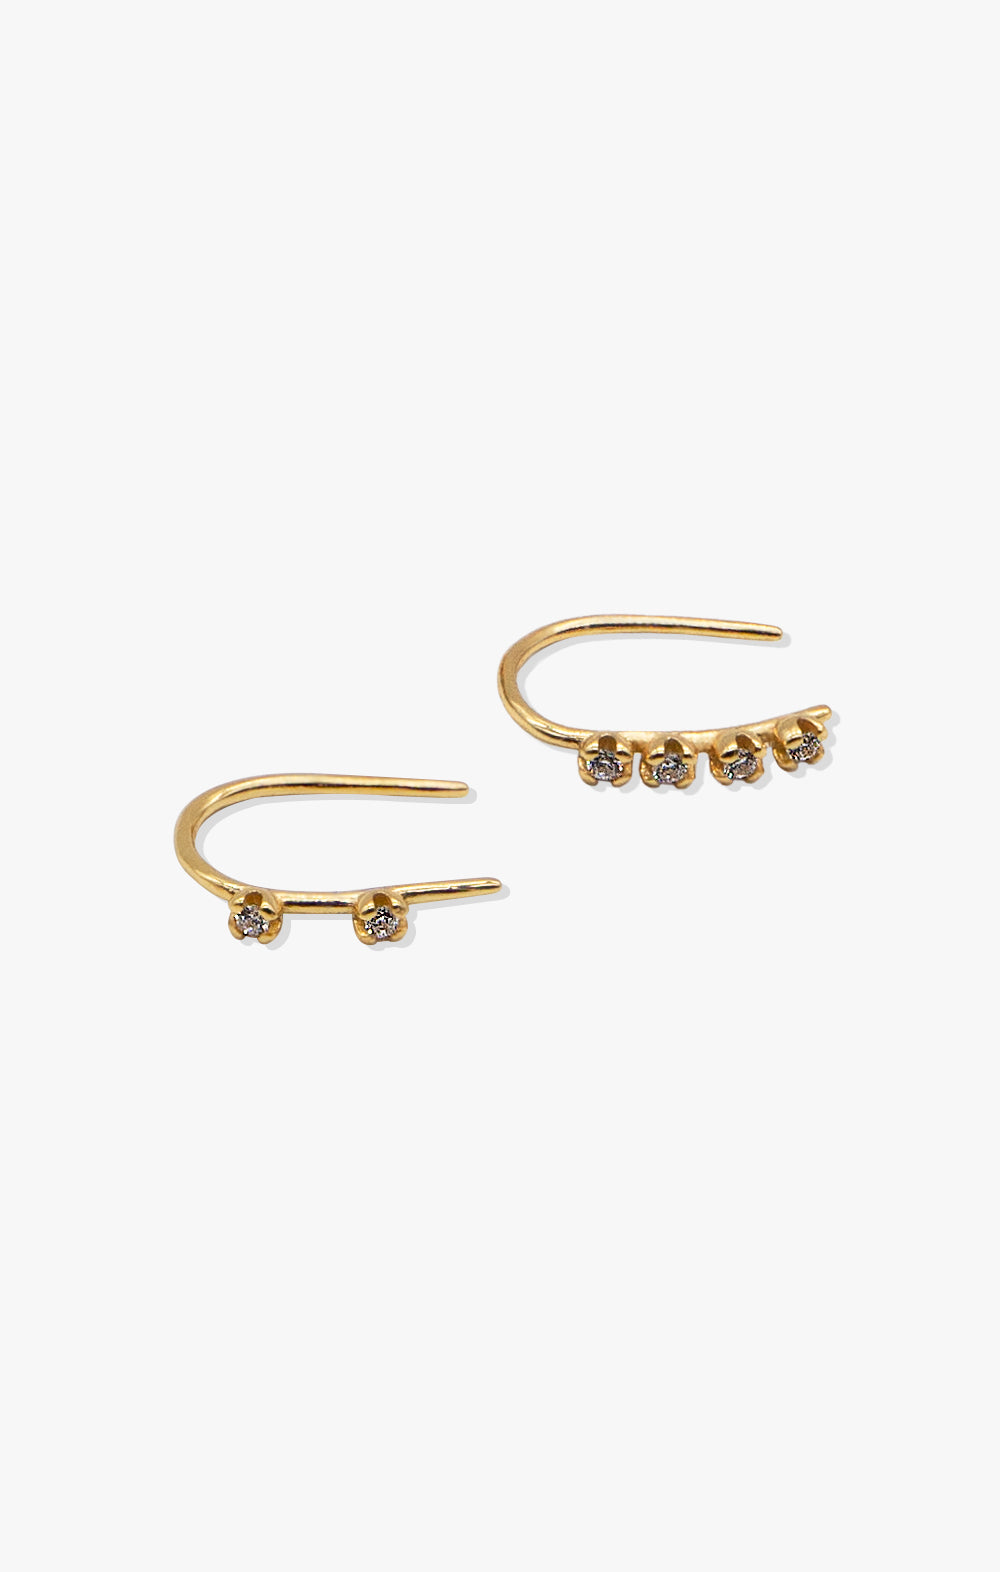 Mismatch CZ Hook Earrings | 18k Gold Vermeil